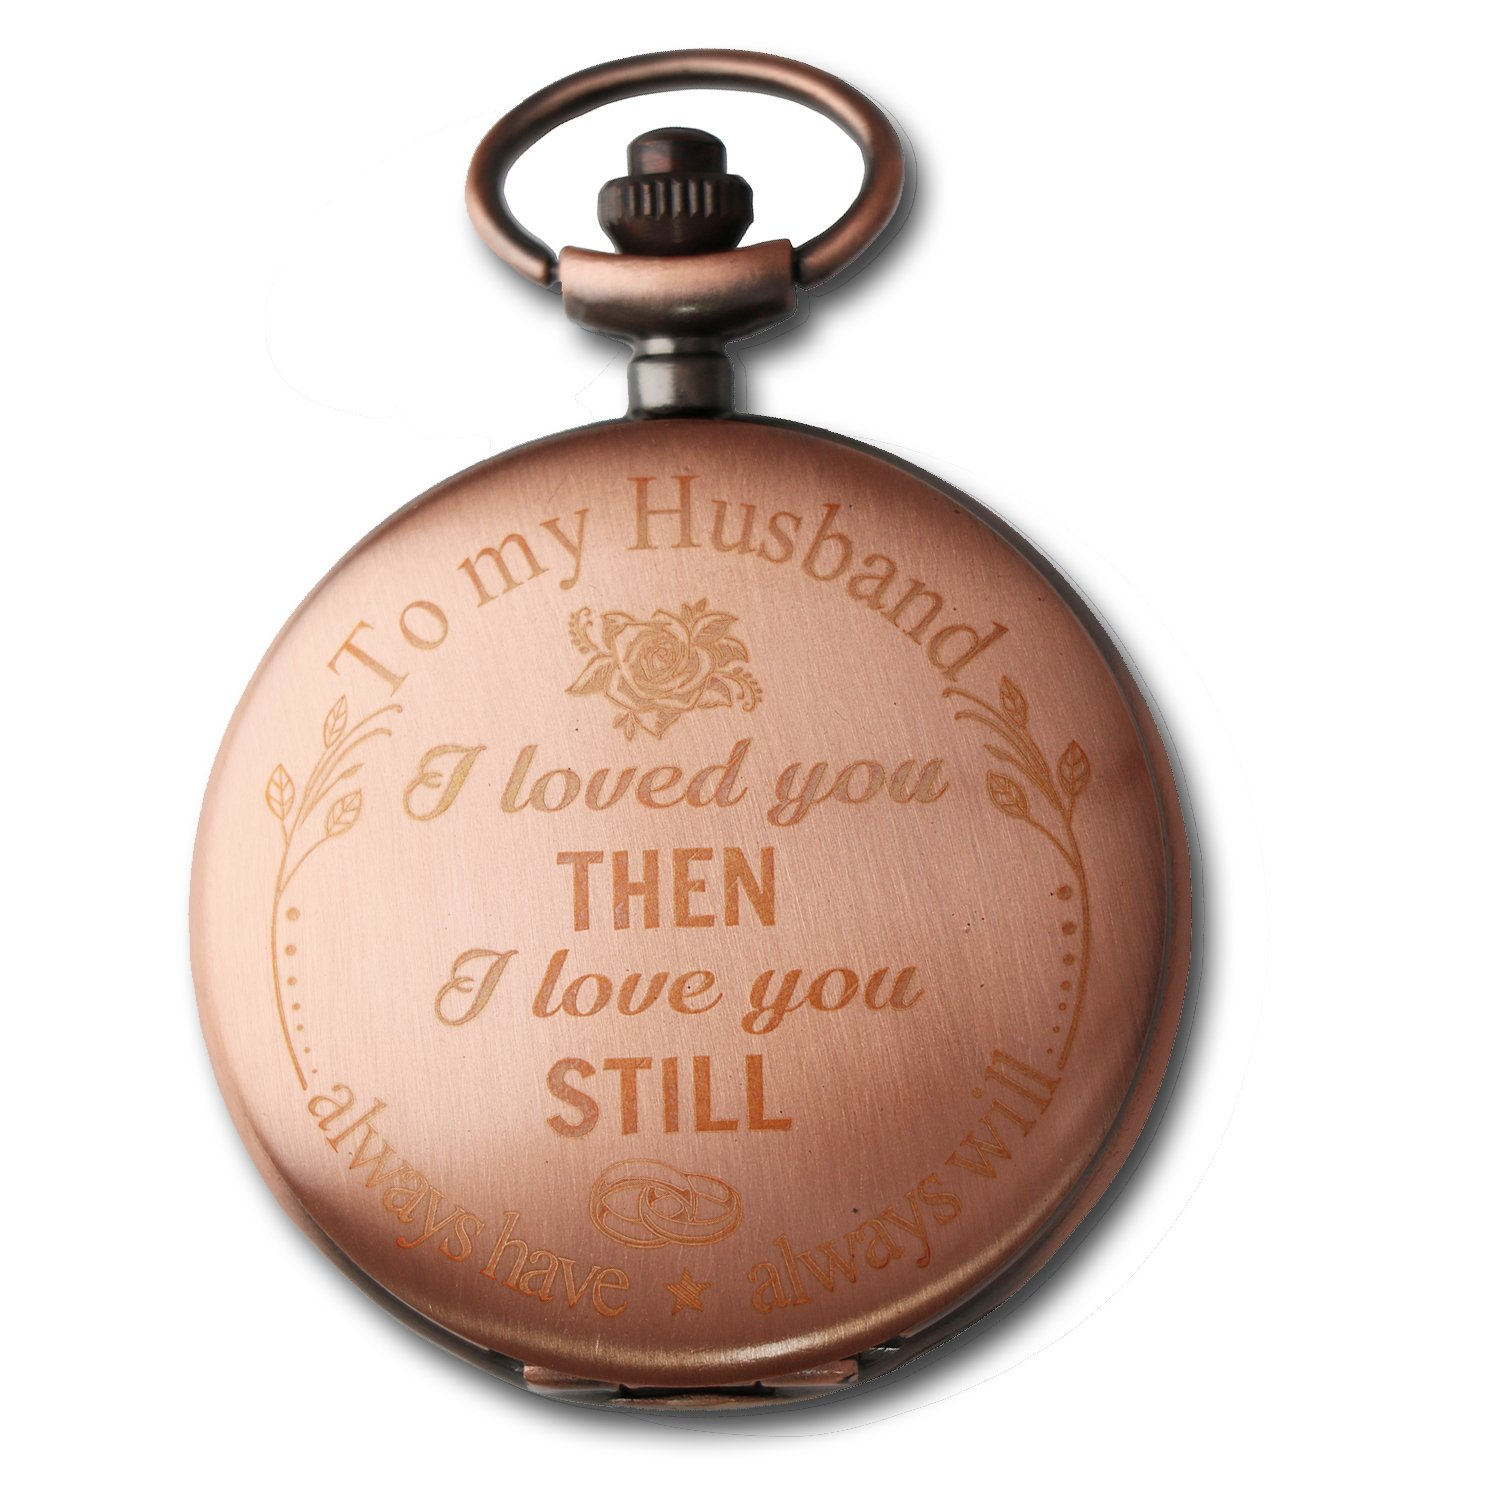 Mainbed Engraved Personalized Pocket Watch, Mens Pocket Watch Pocket Watch To Husband Gift From Wife To Husband